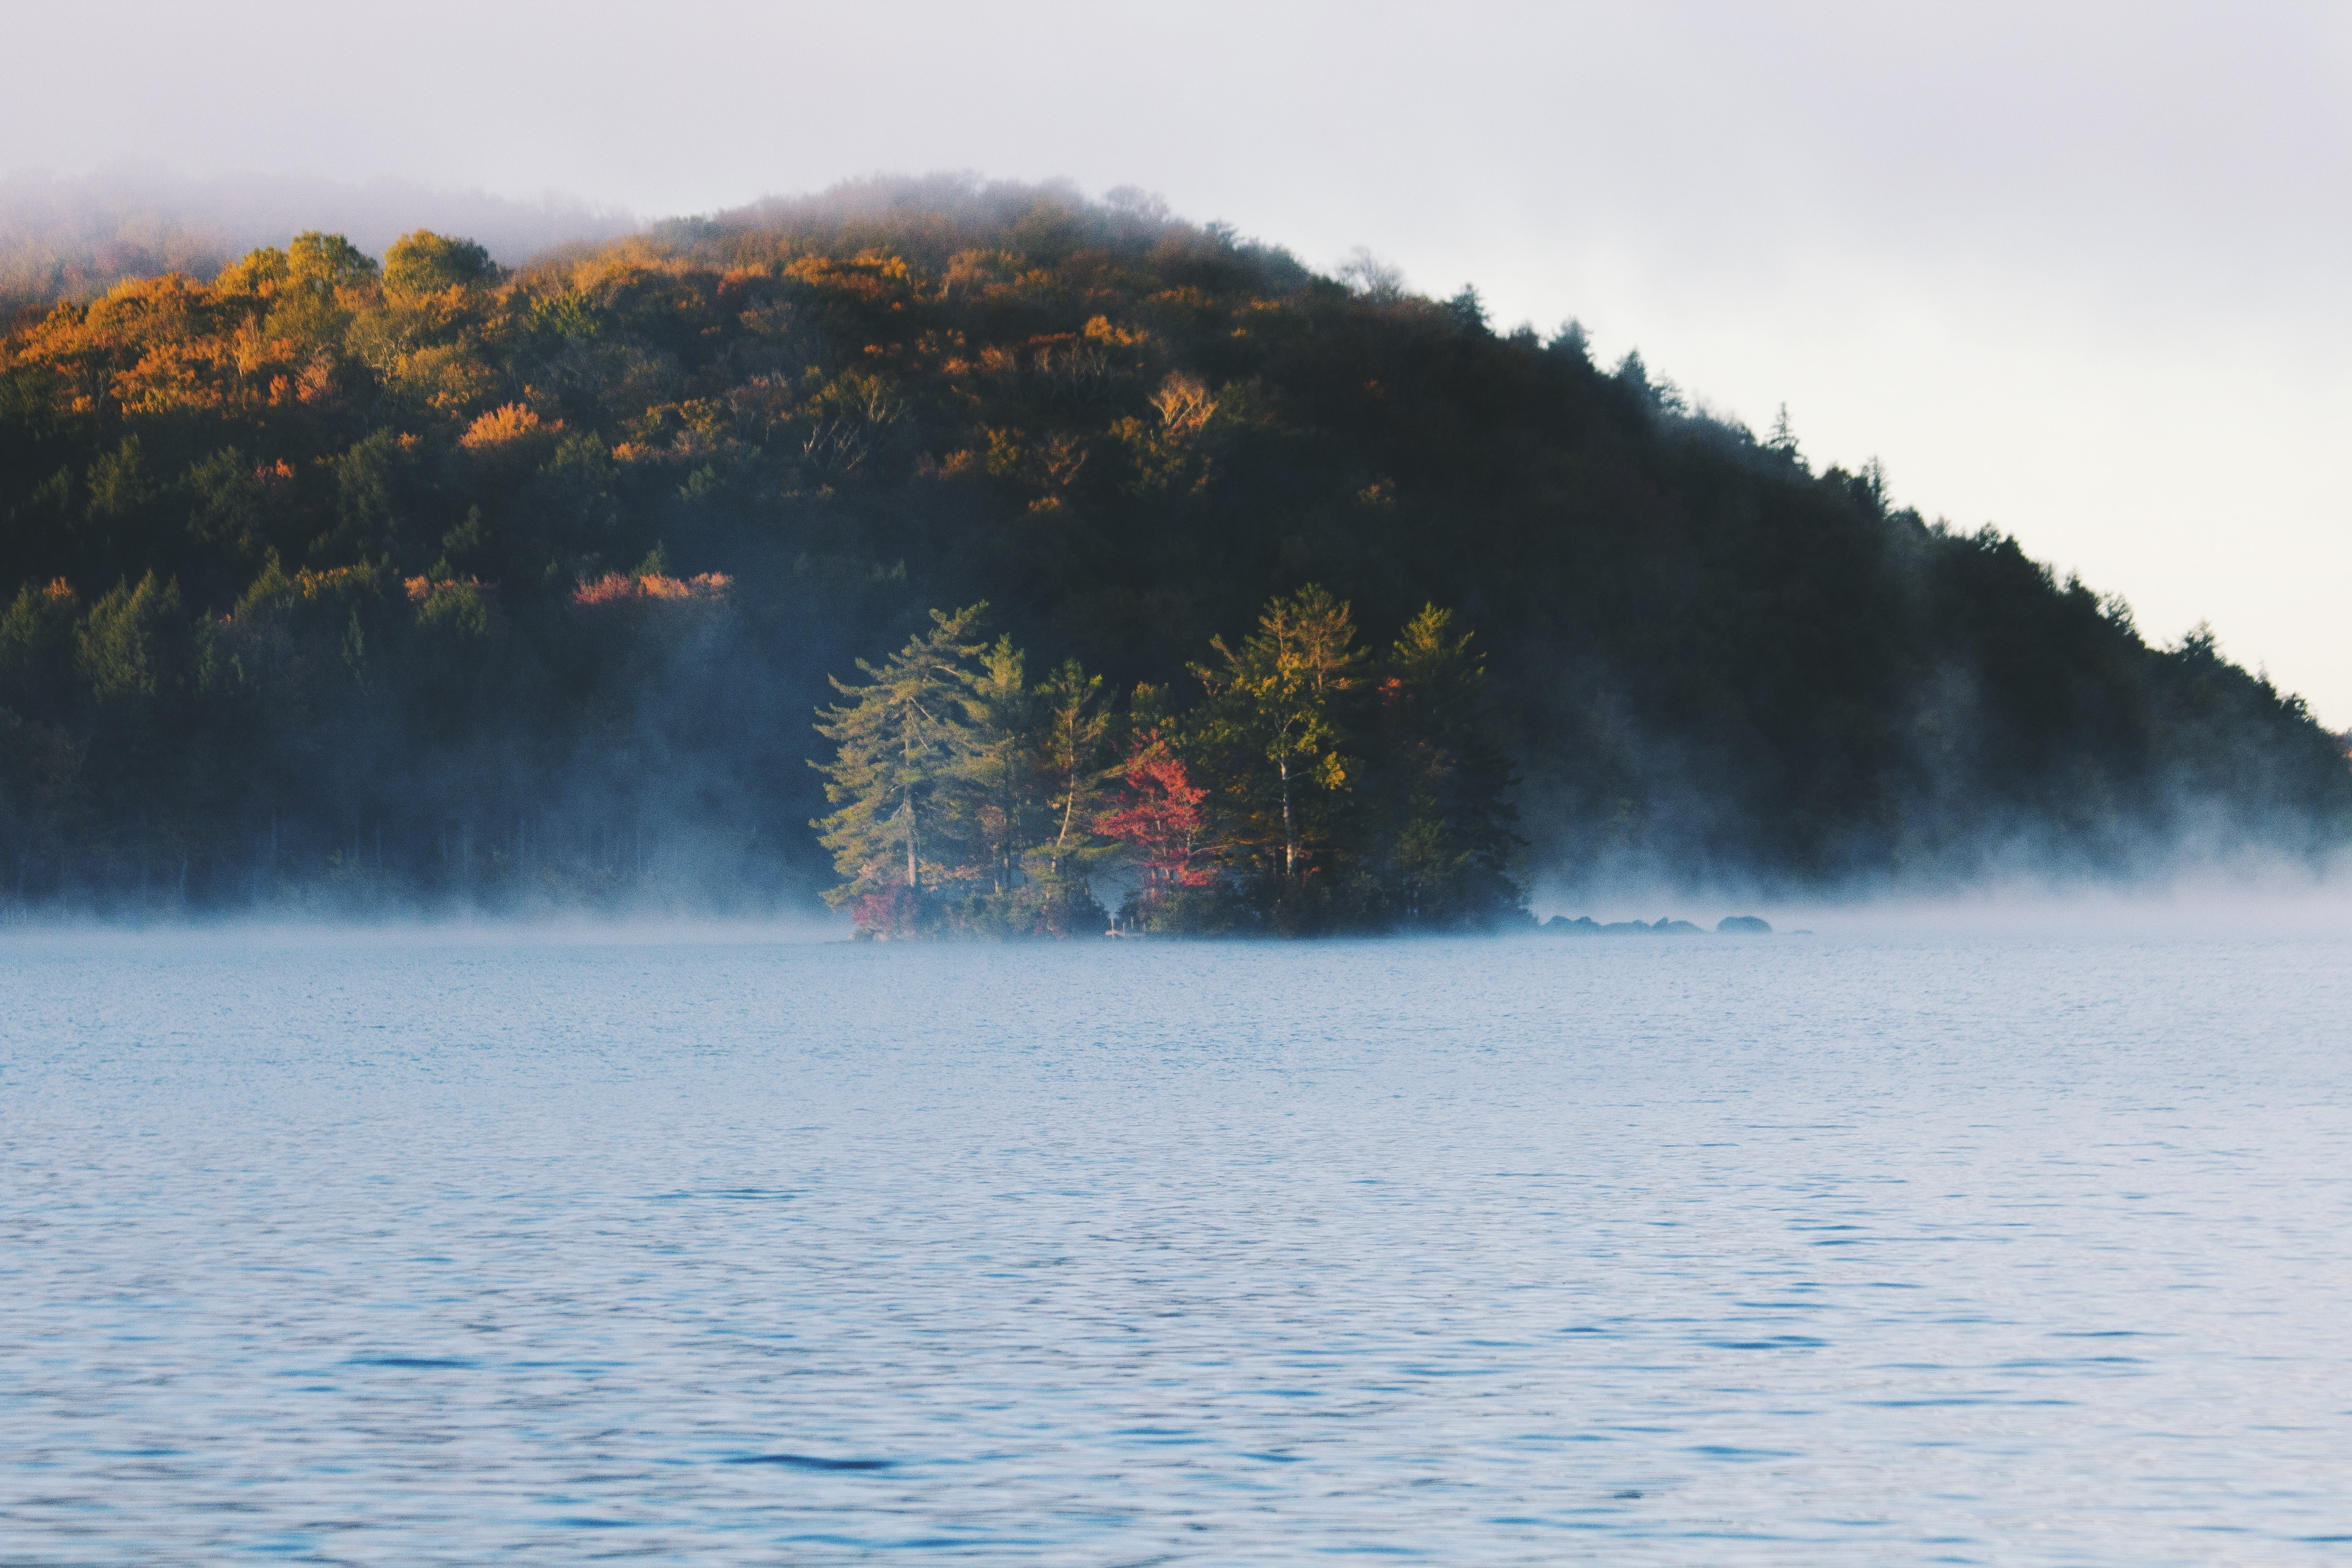 Mist rising up above the surface a quiet lake